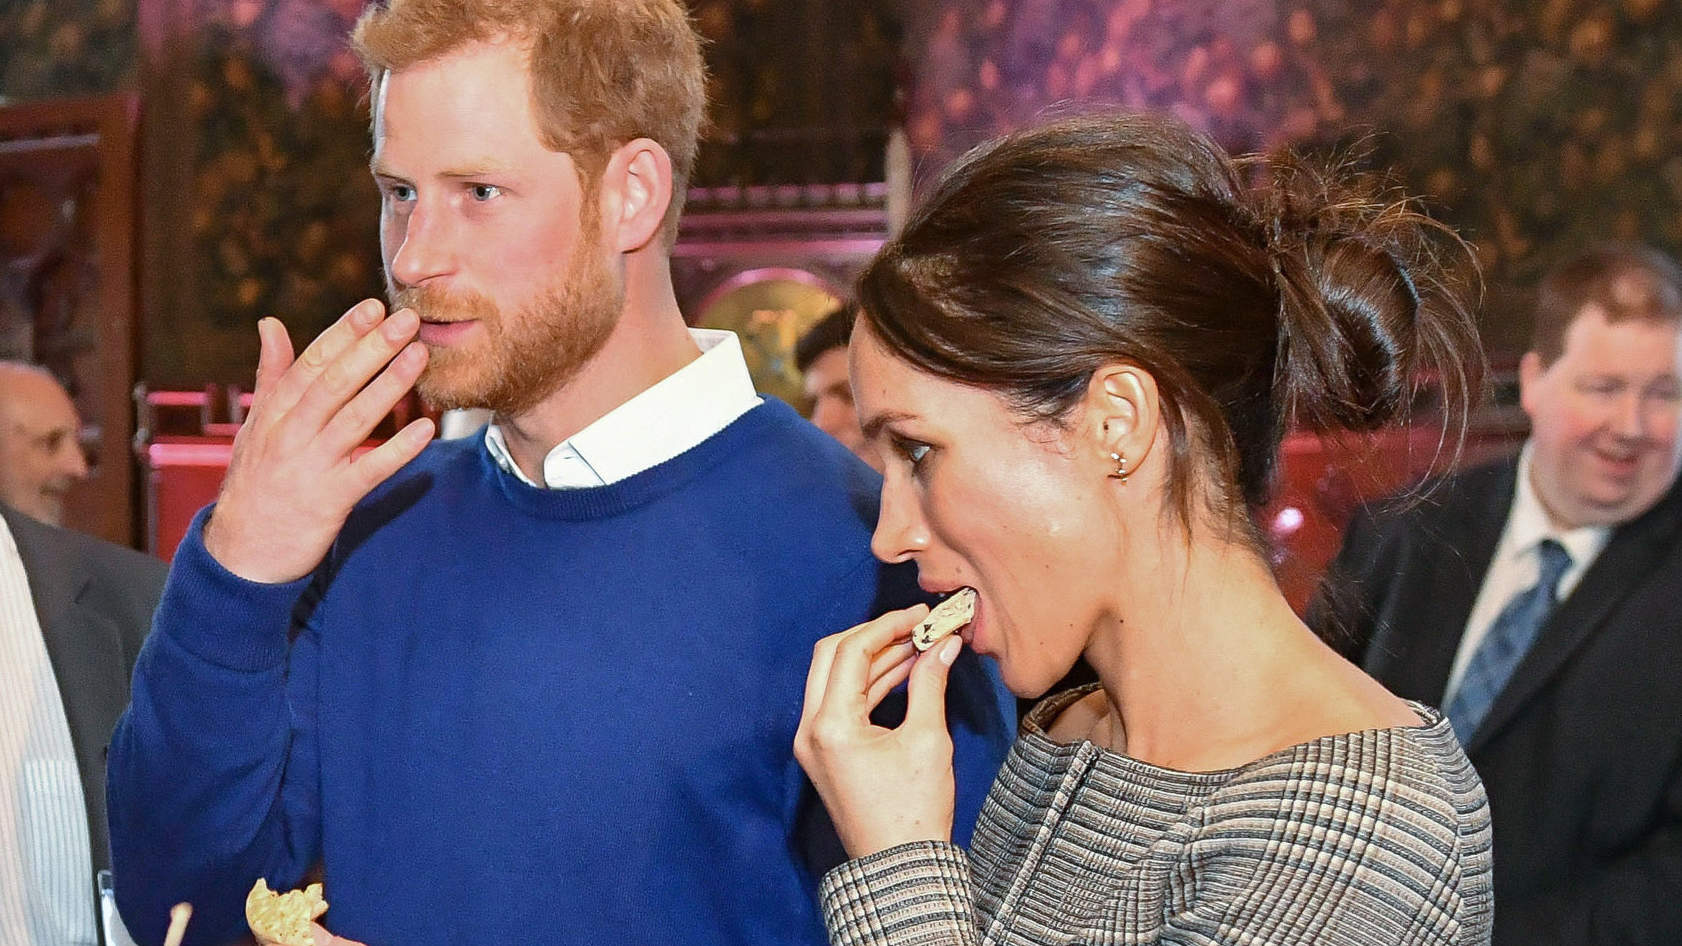 Surprising Nobody, Prince Harry and Meghan Markle Have Chosen a Nontraditional Wedding Cake